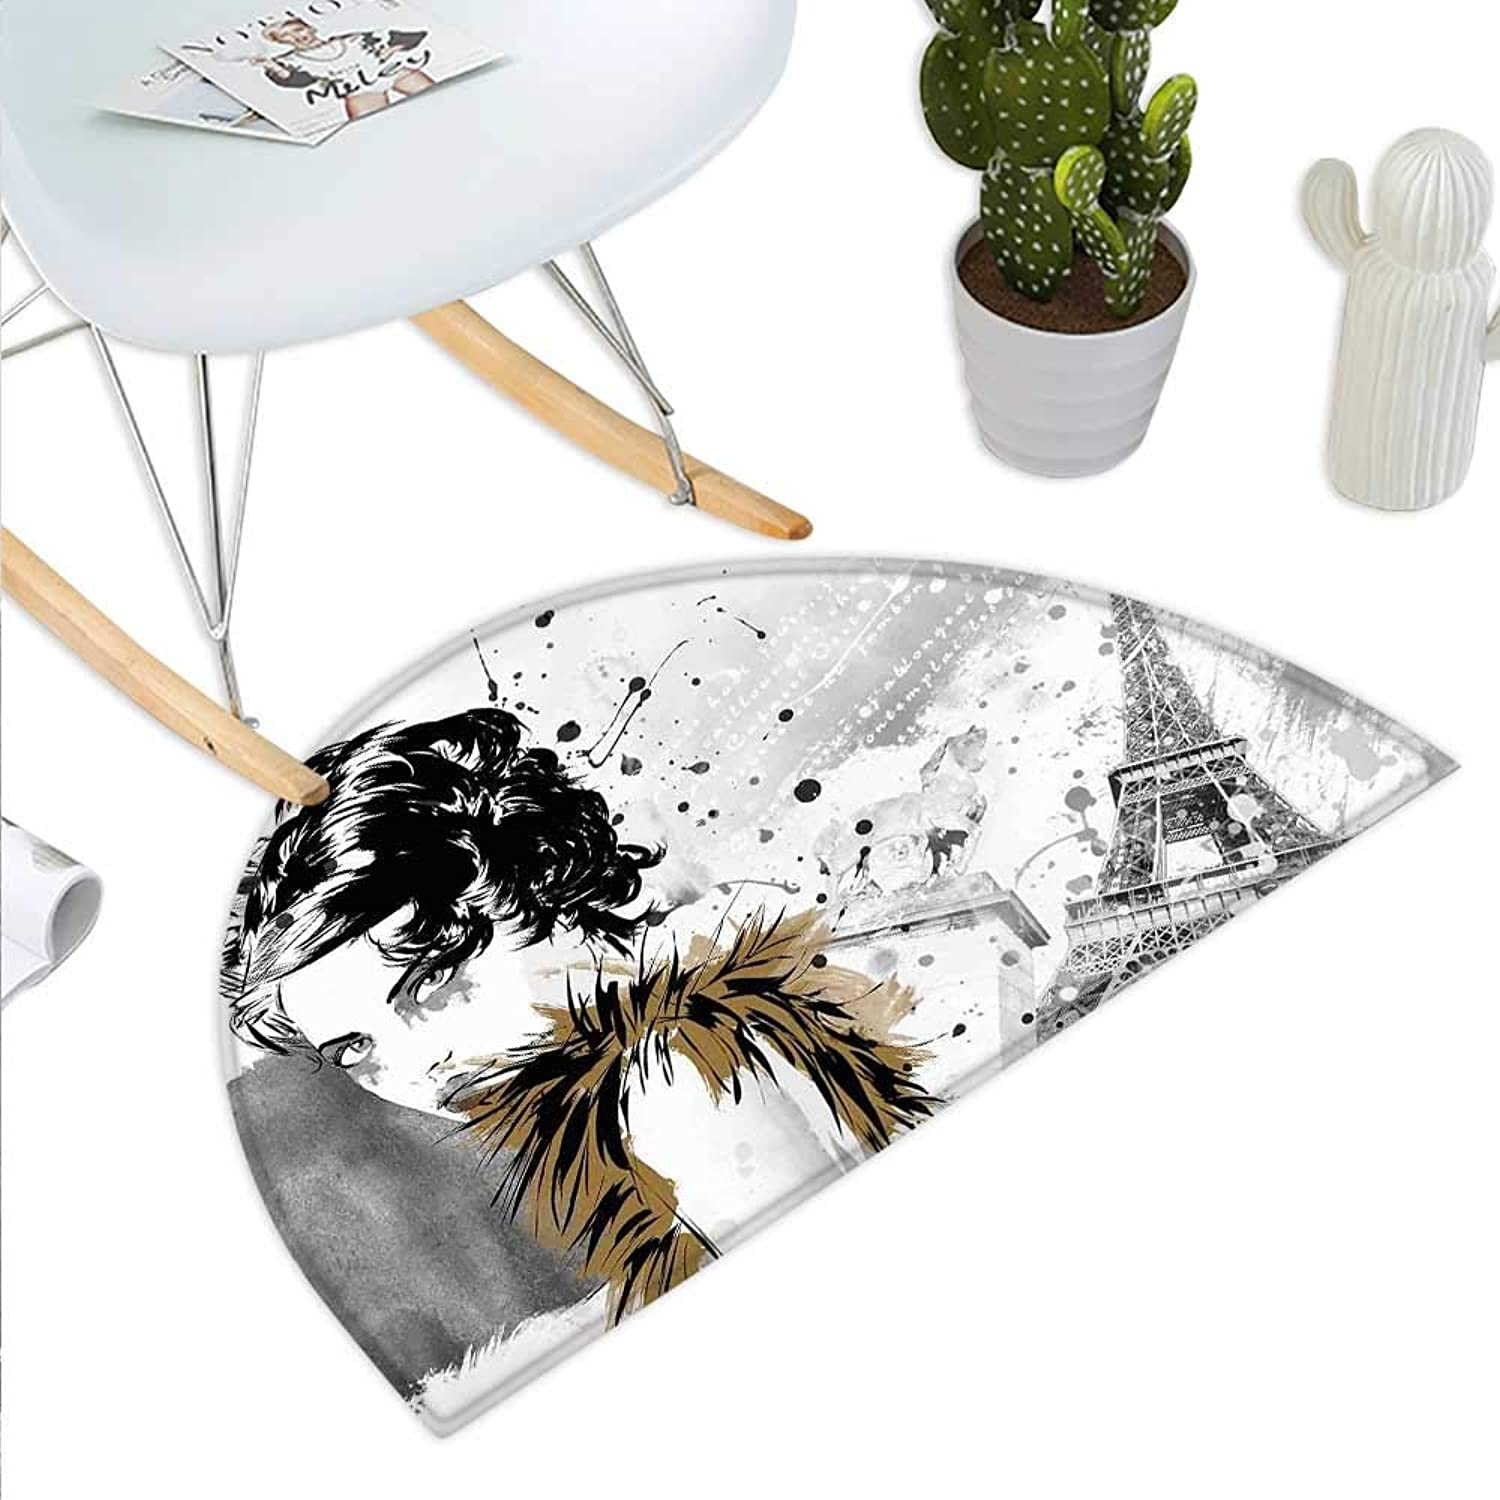 Modern Semicircle Doormat Posing Fashion Model Girl with Feathers and Dots Paris Eiffel Contemporary Artful Halfmoon doormats H 35.4  xD 53.1  Grey White